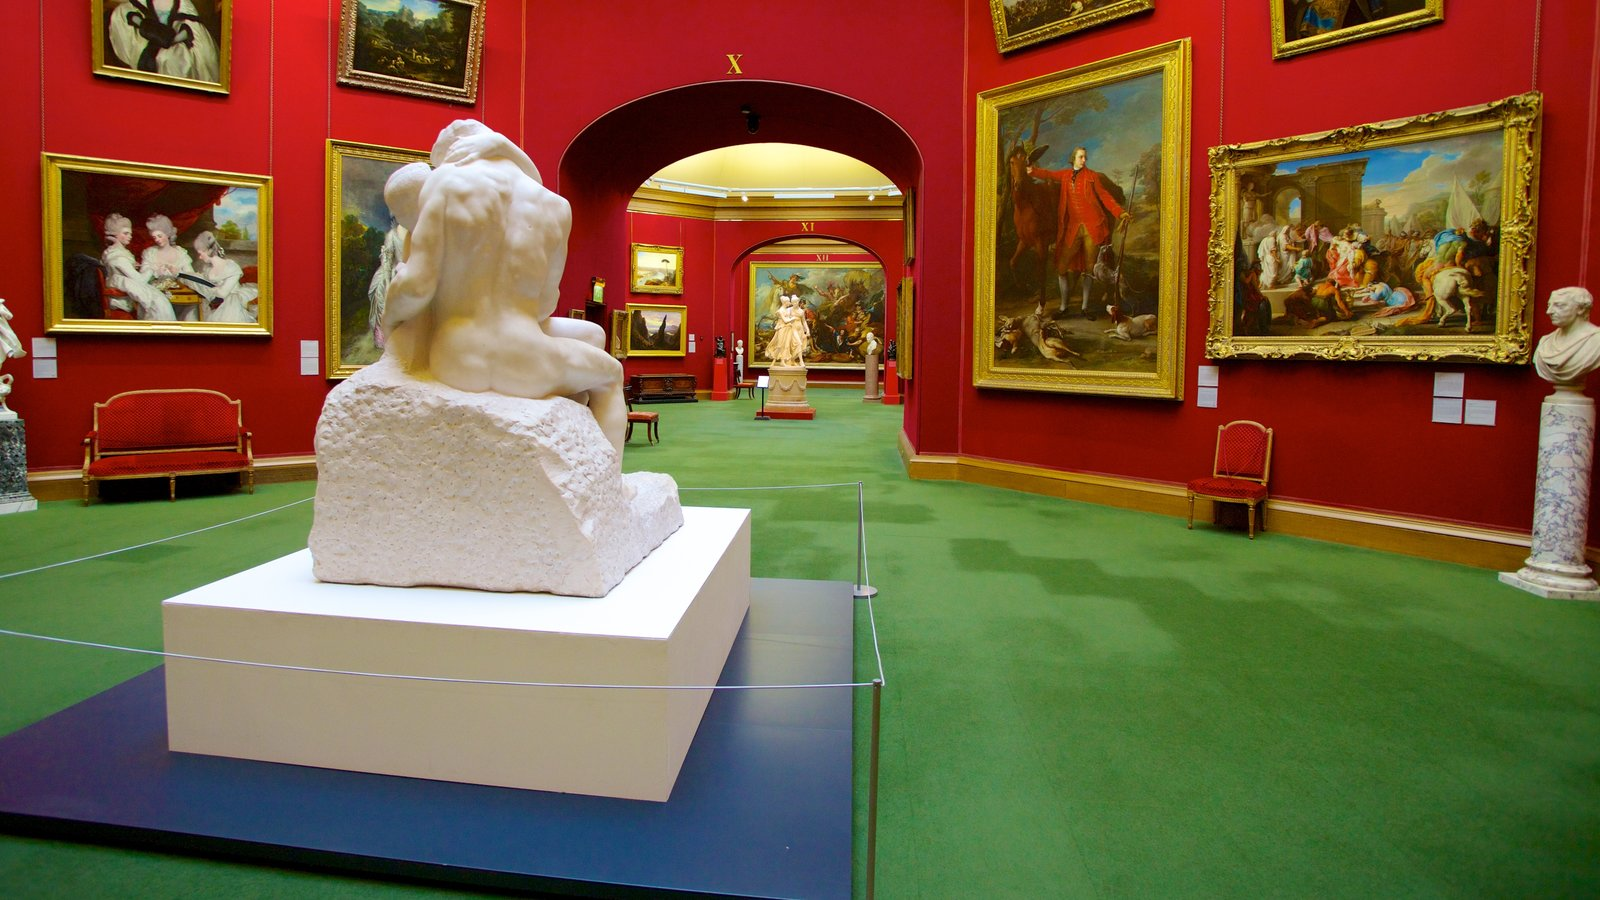 National Gallery of Scotland which includes interior views, art and a statue or sculpture